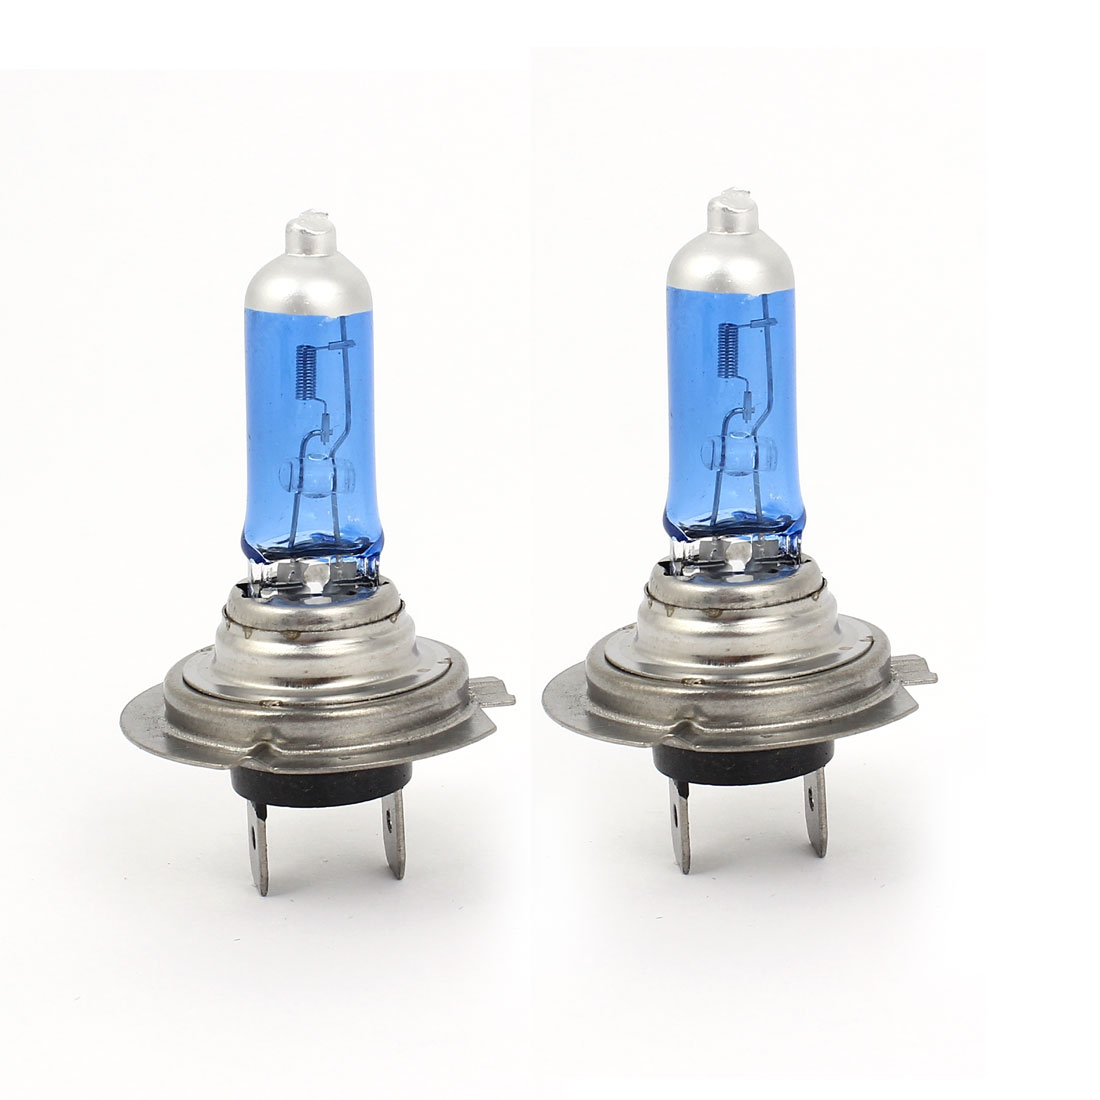 2 Pcs Super White H7 Xenon Halogen Headlight Light Lamp Bulbs 50W 12V Unique Bargains